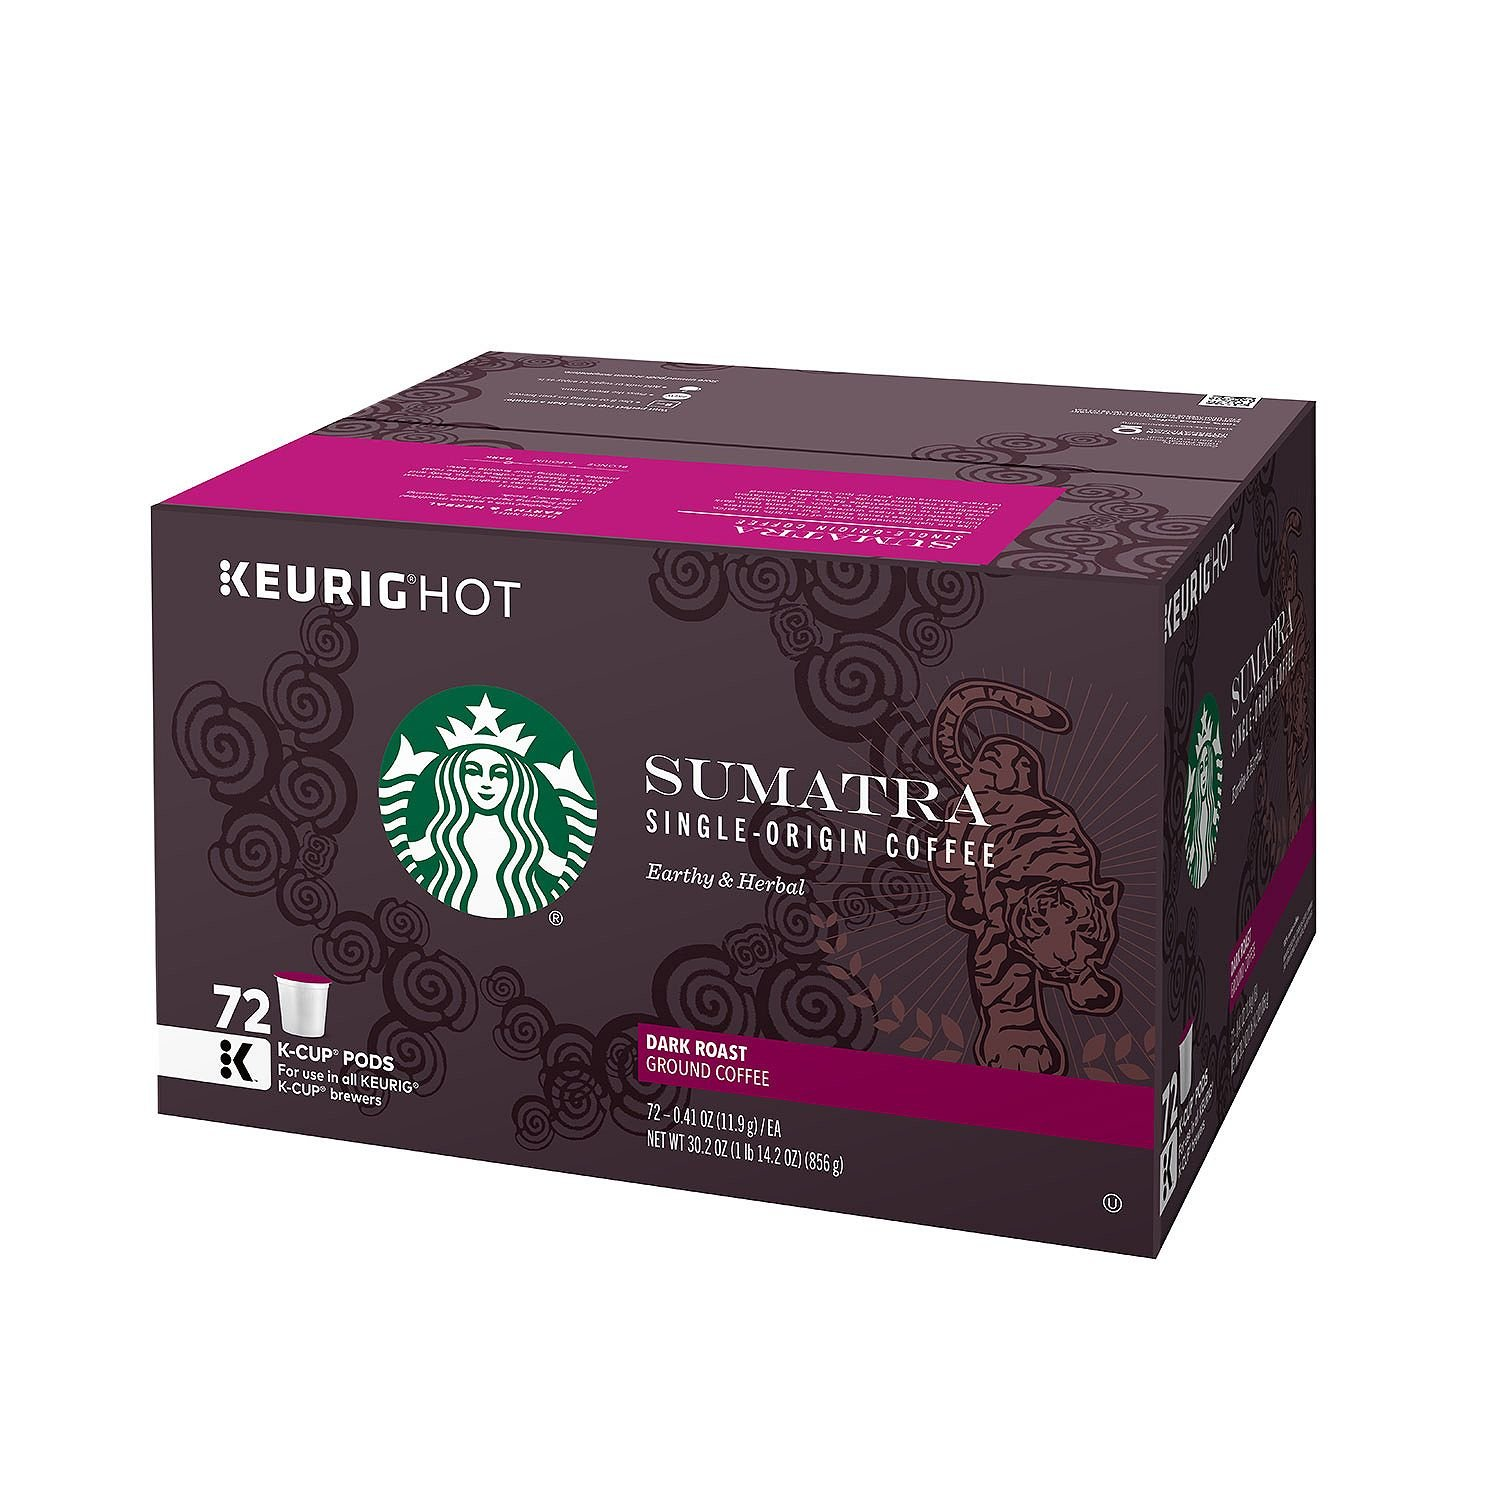 Starbucks 72 Count Sumatra Coffee, 0.41 Ounce by Starbucks